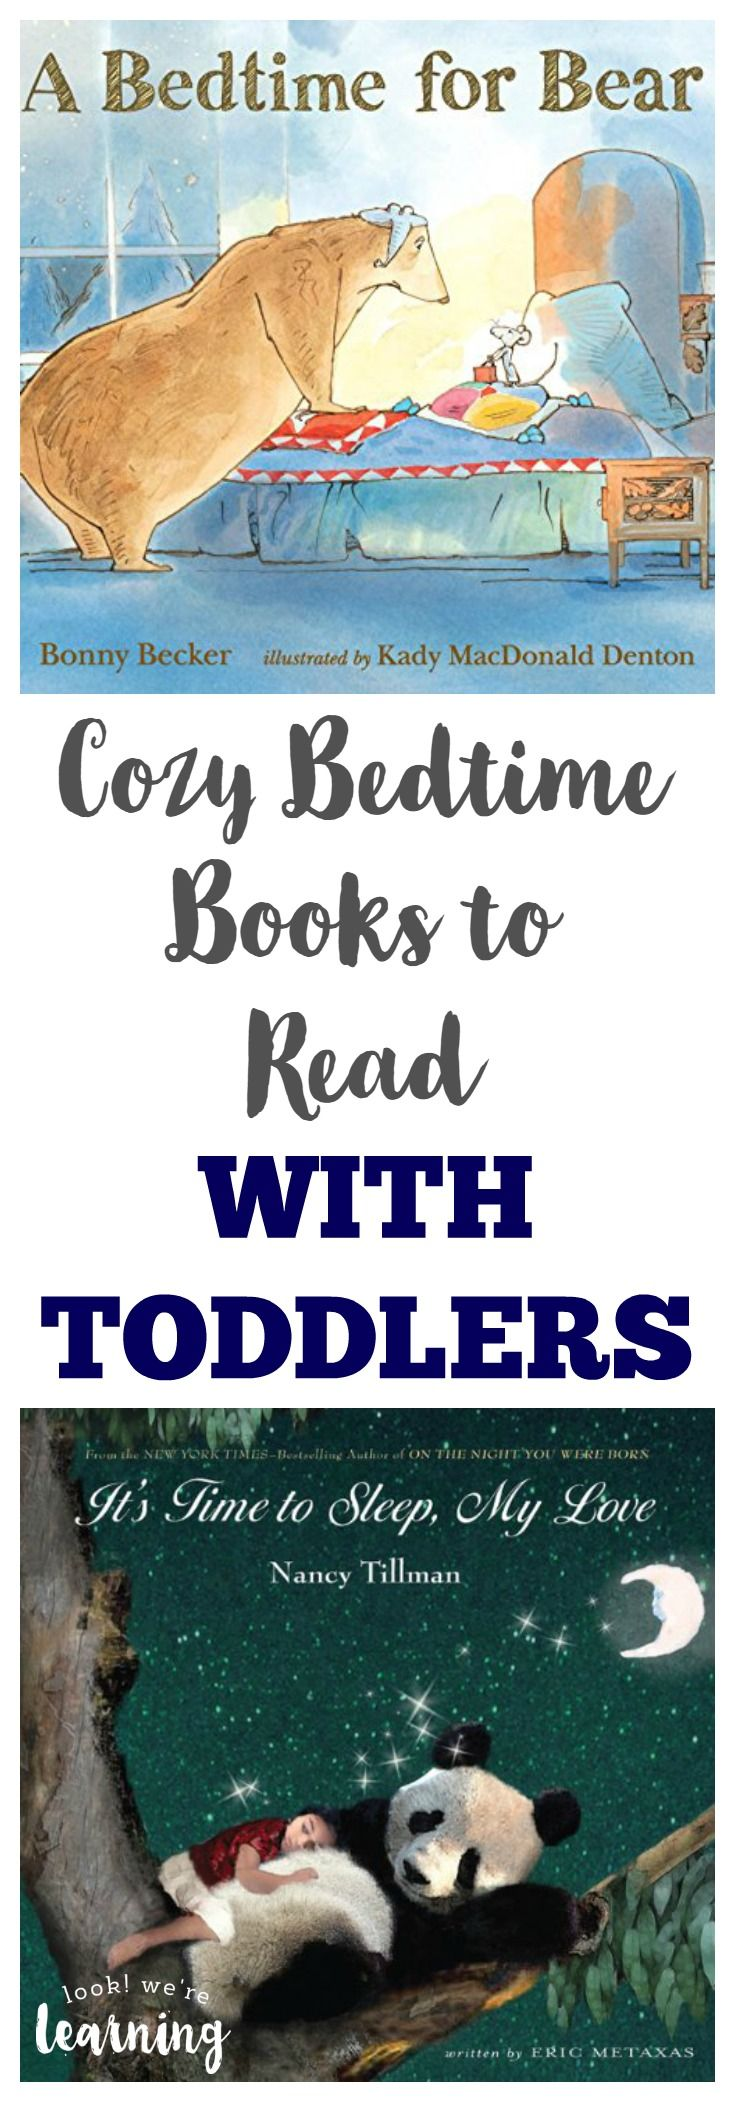 Uncategorized Good Bedtime Stories For Kids best 25 bedtime stories ideas on pinterest any story in english cozy books to share with toddlers